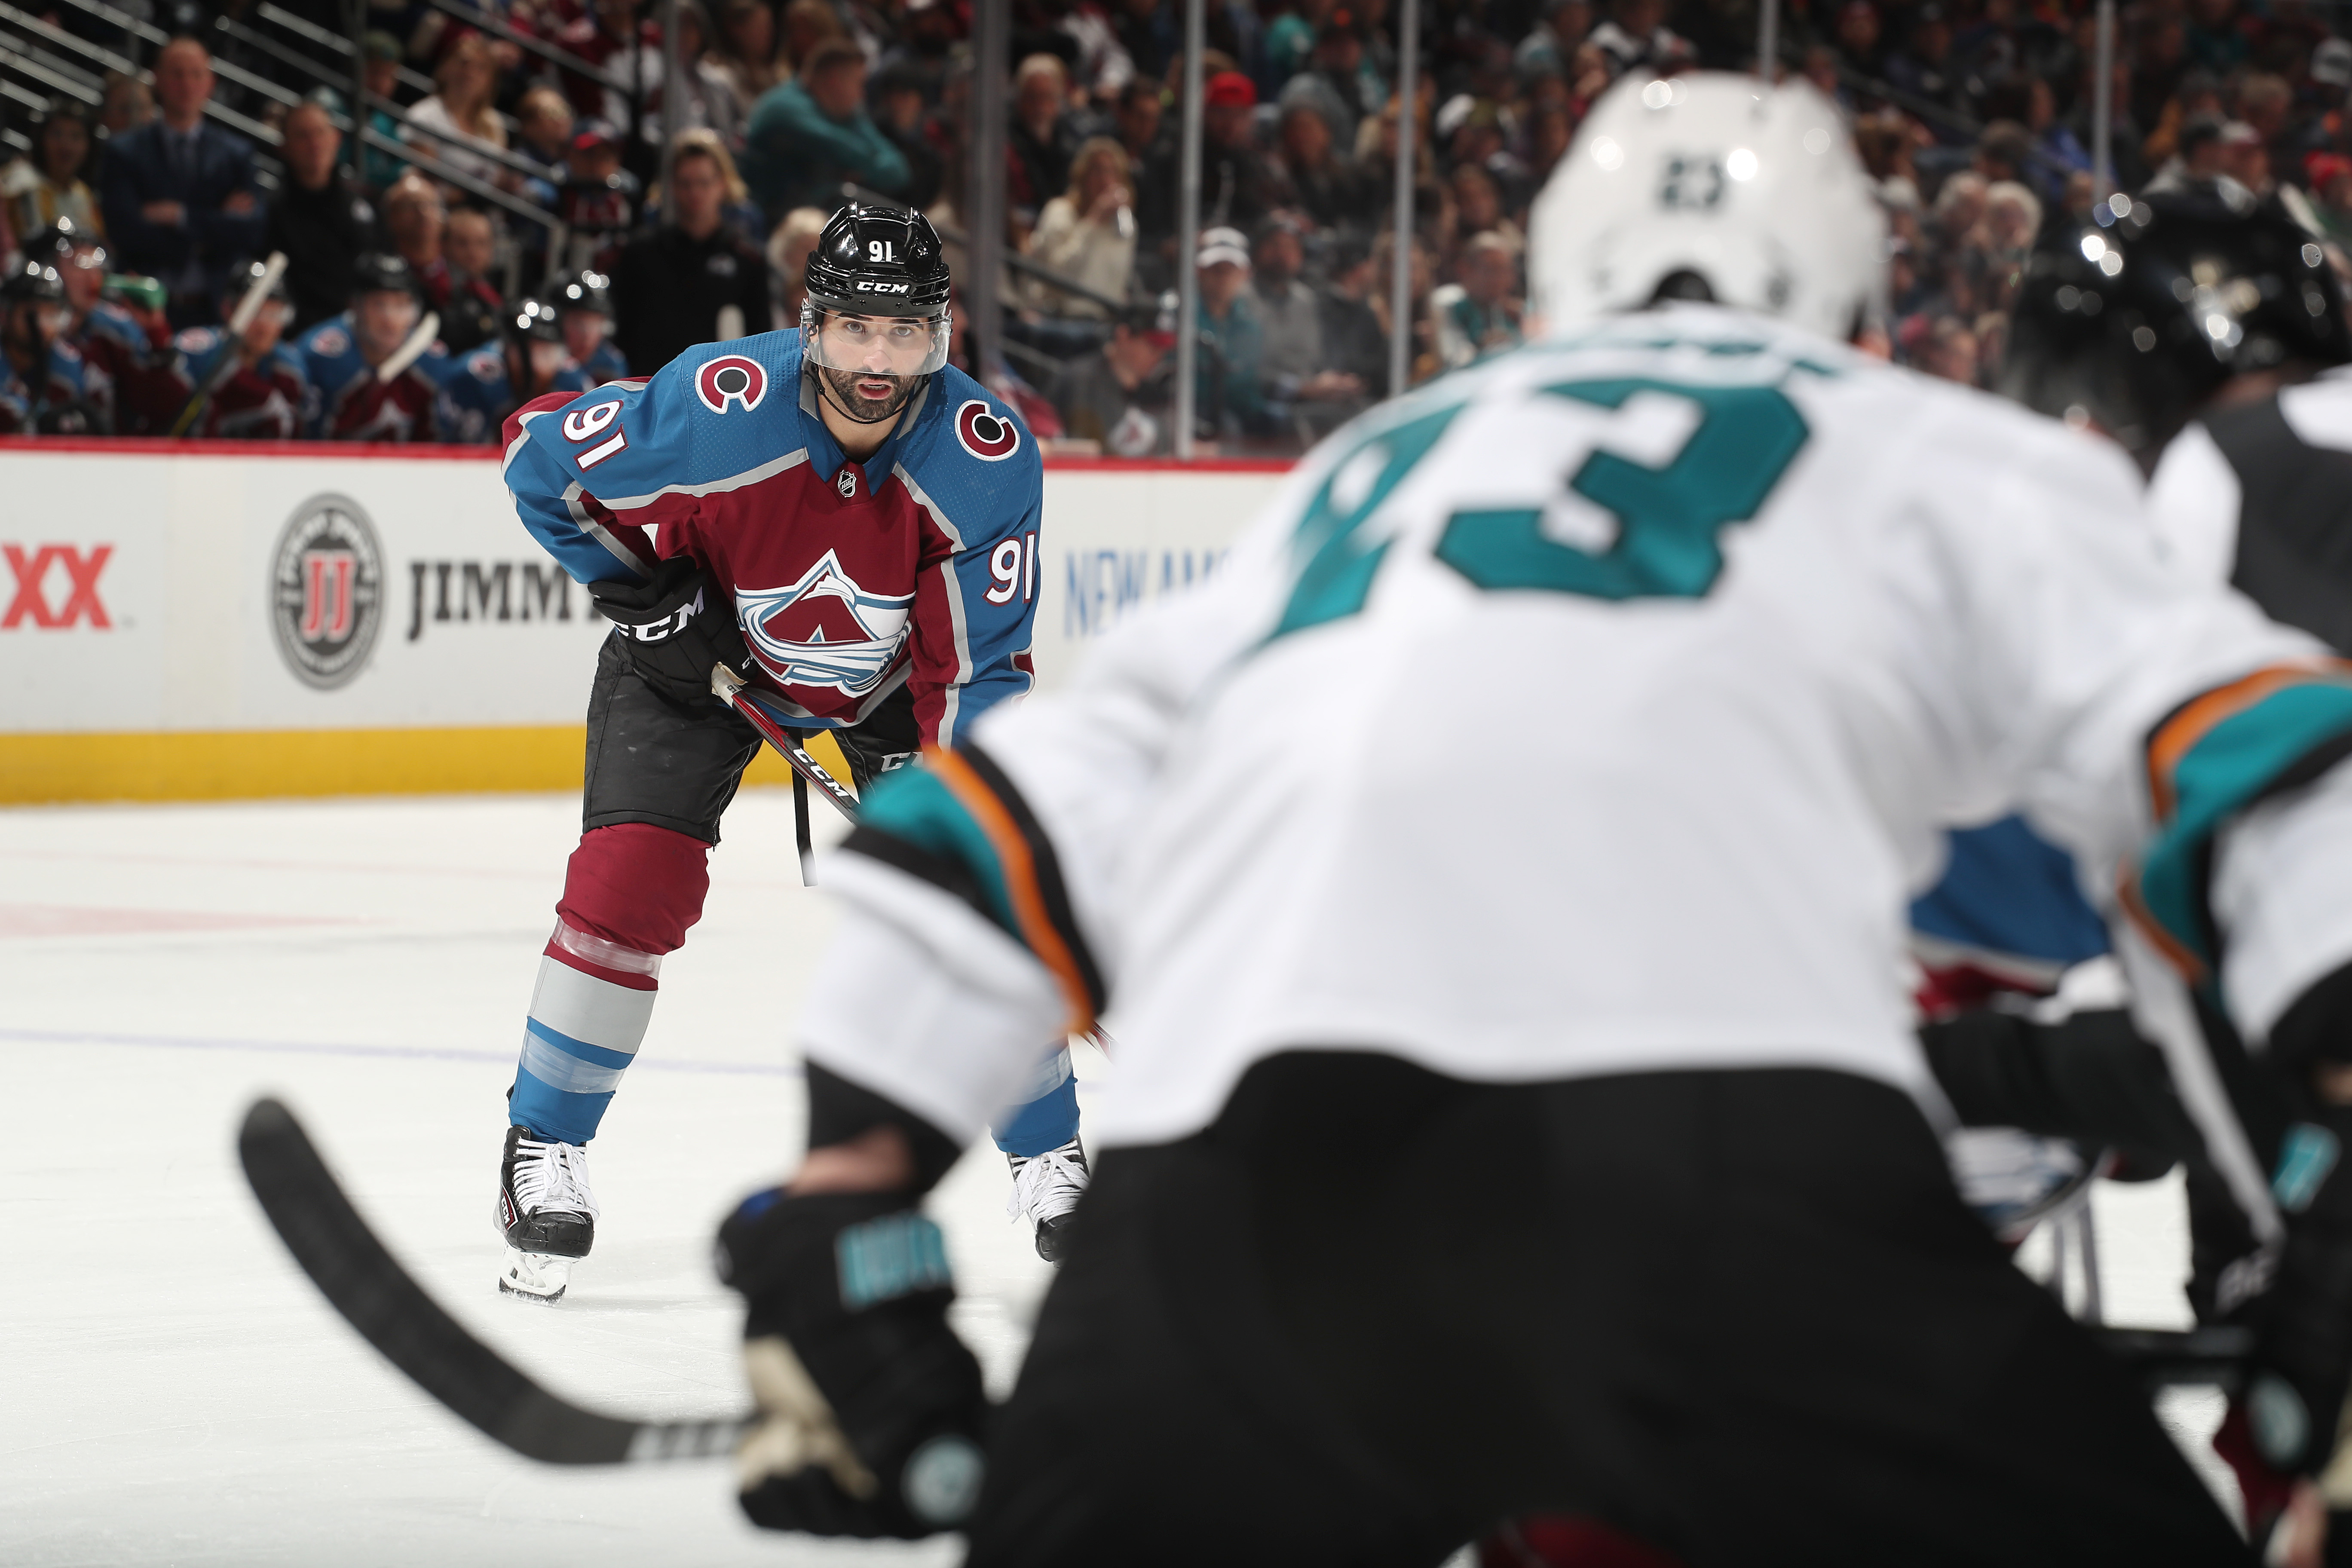 Nazem Kadri #91 of the Colorado Avalanche looks on against the San Jose Sharks at Pepsi Center on January 16, 2020 in Denver, Colorado.